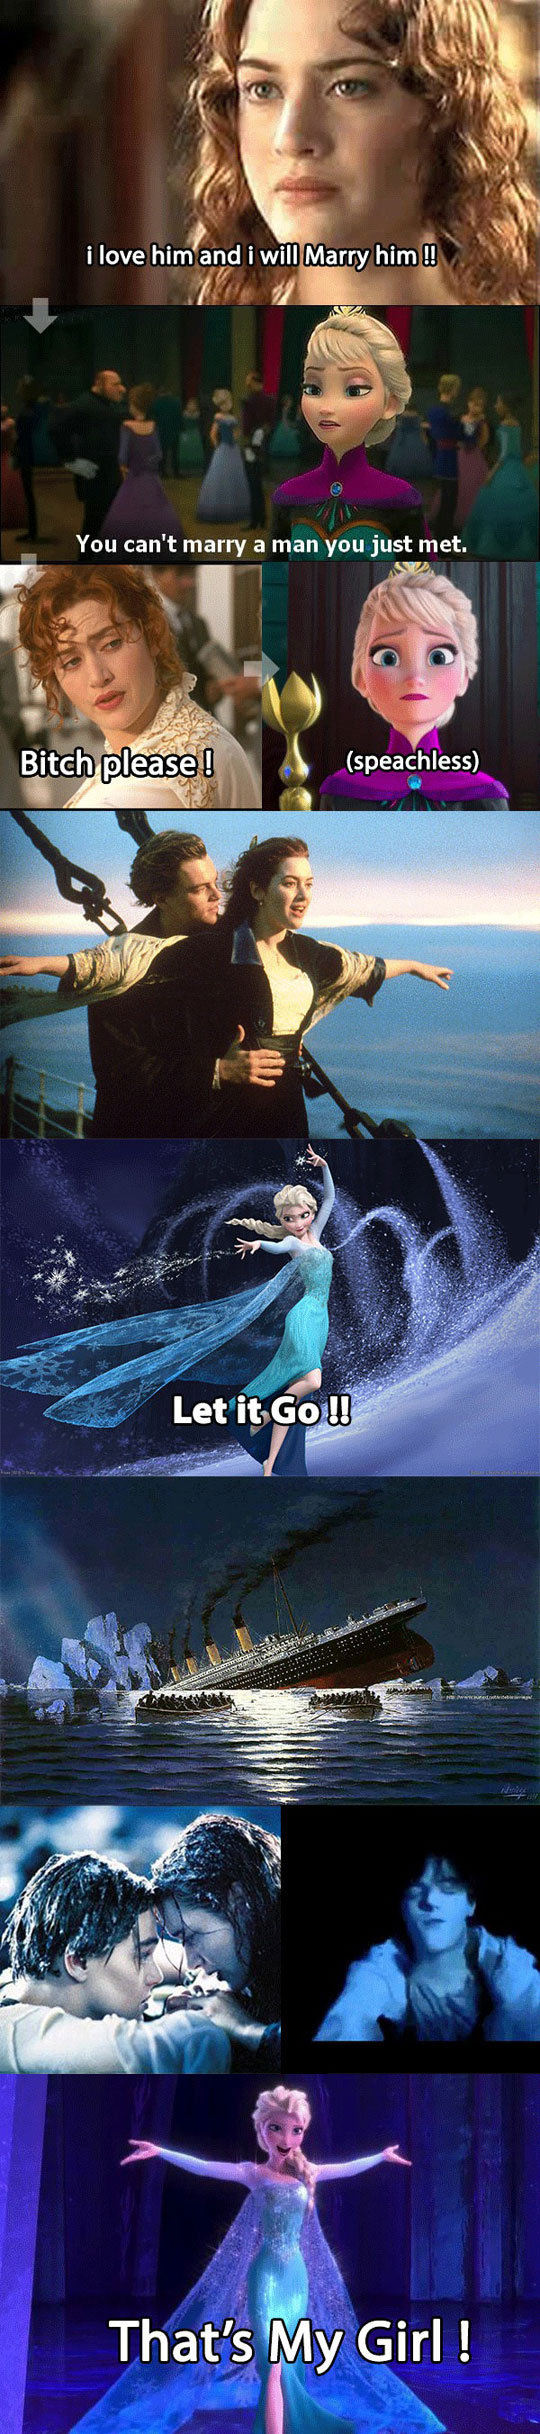 funny-picture-Rose-Frozen-Titanic-stories-vengeance